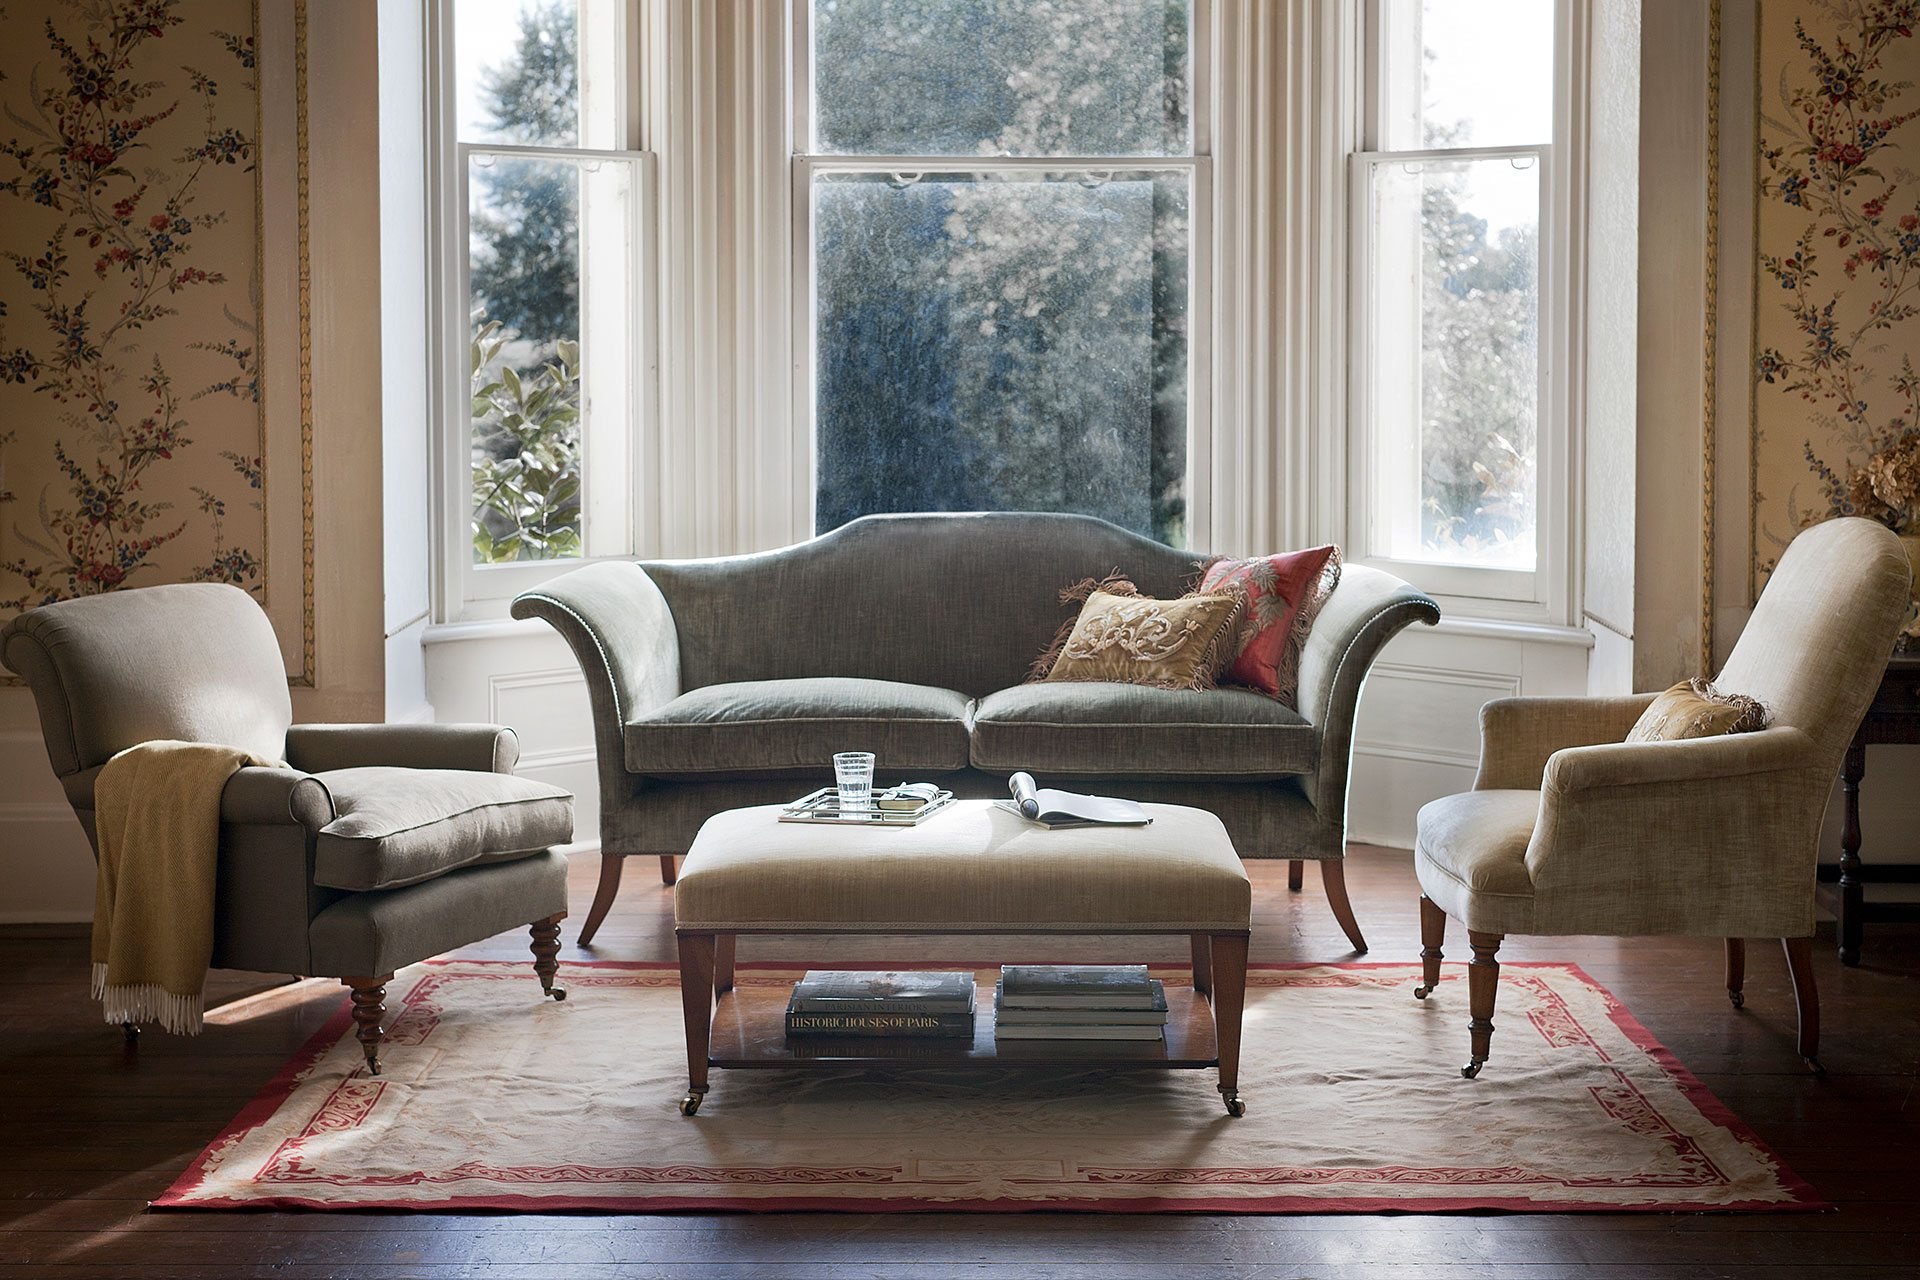 ashley manor harriet sofa in mink feet home depot 50 43 country house interiors ideas we love interior